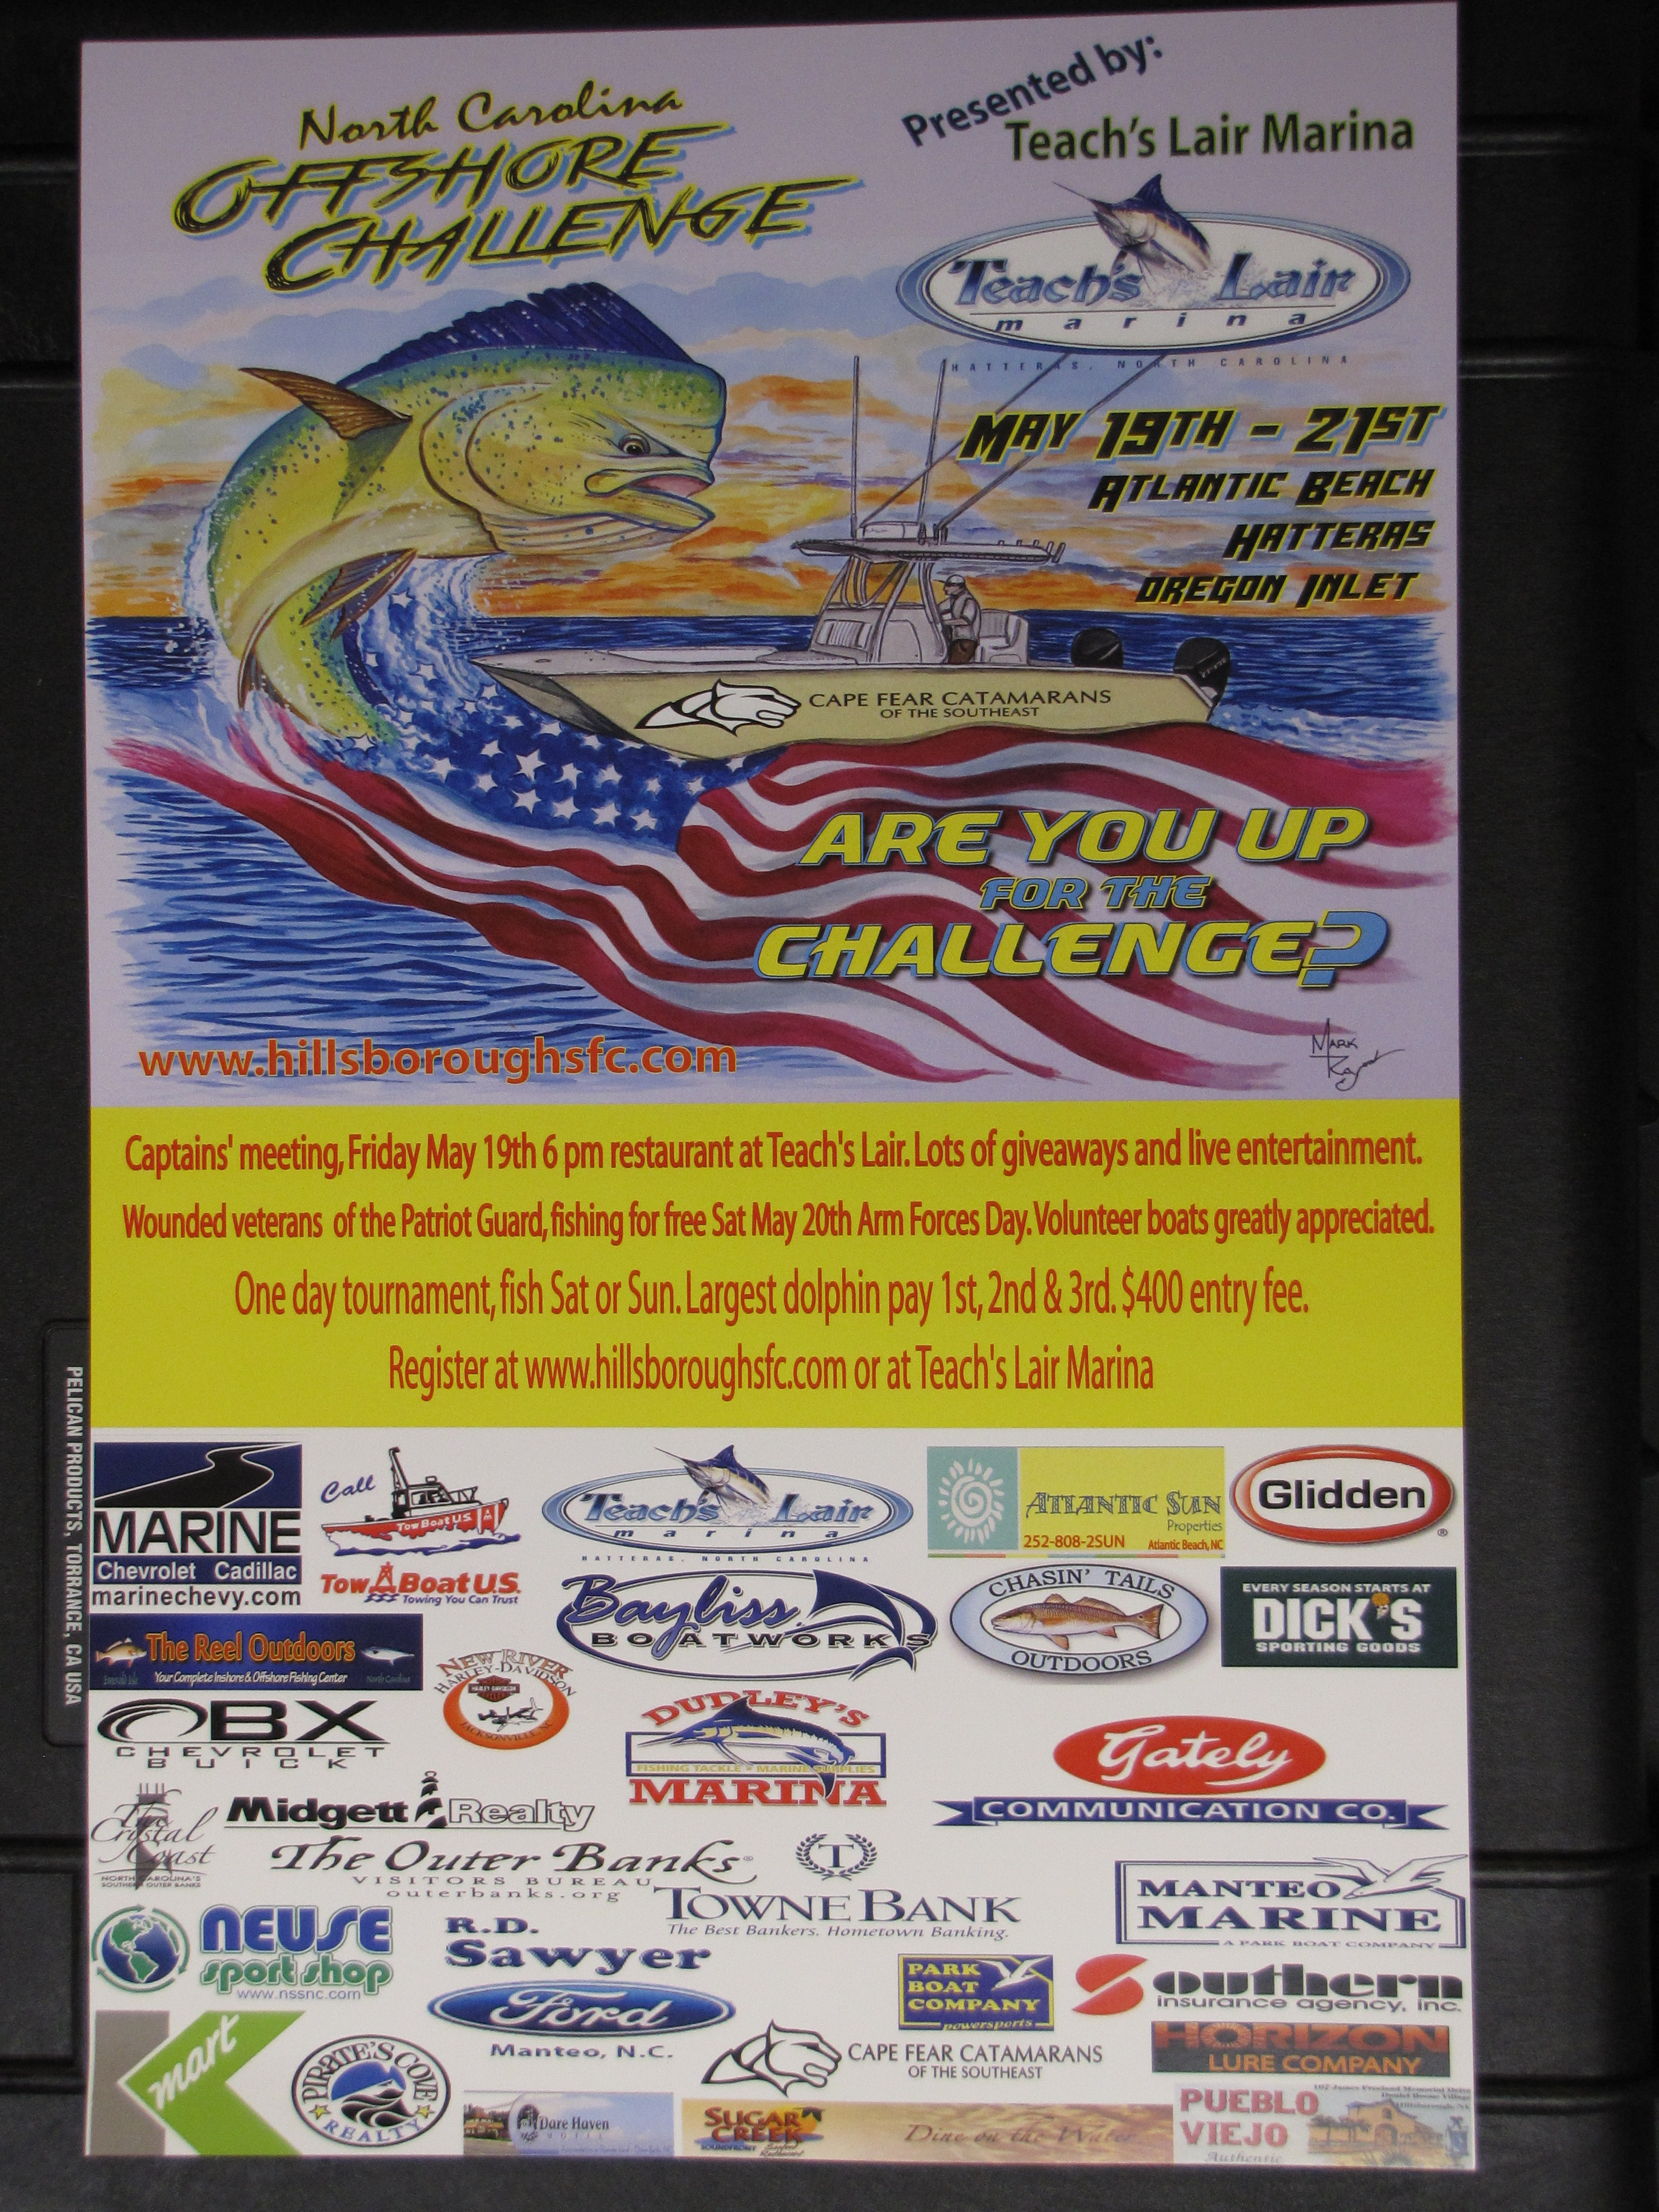 Hatteras, Fishing, Dolphin, Tournament, Veterans Support,